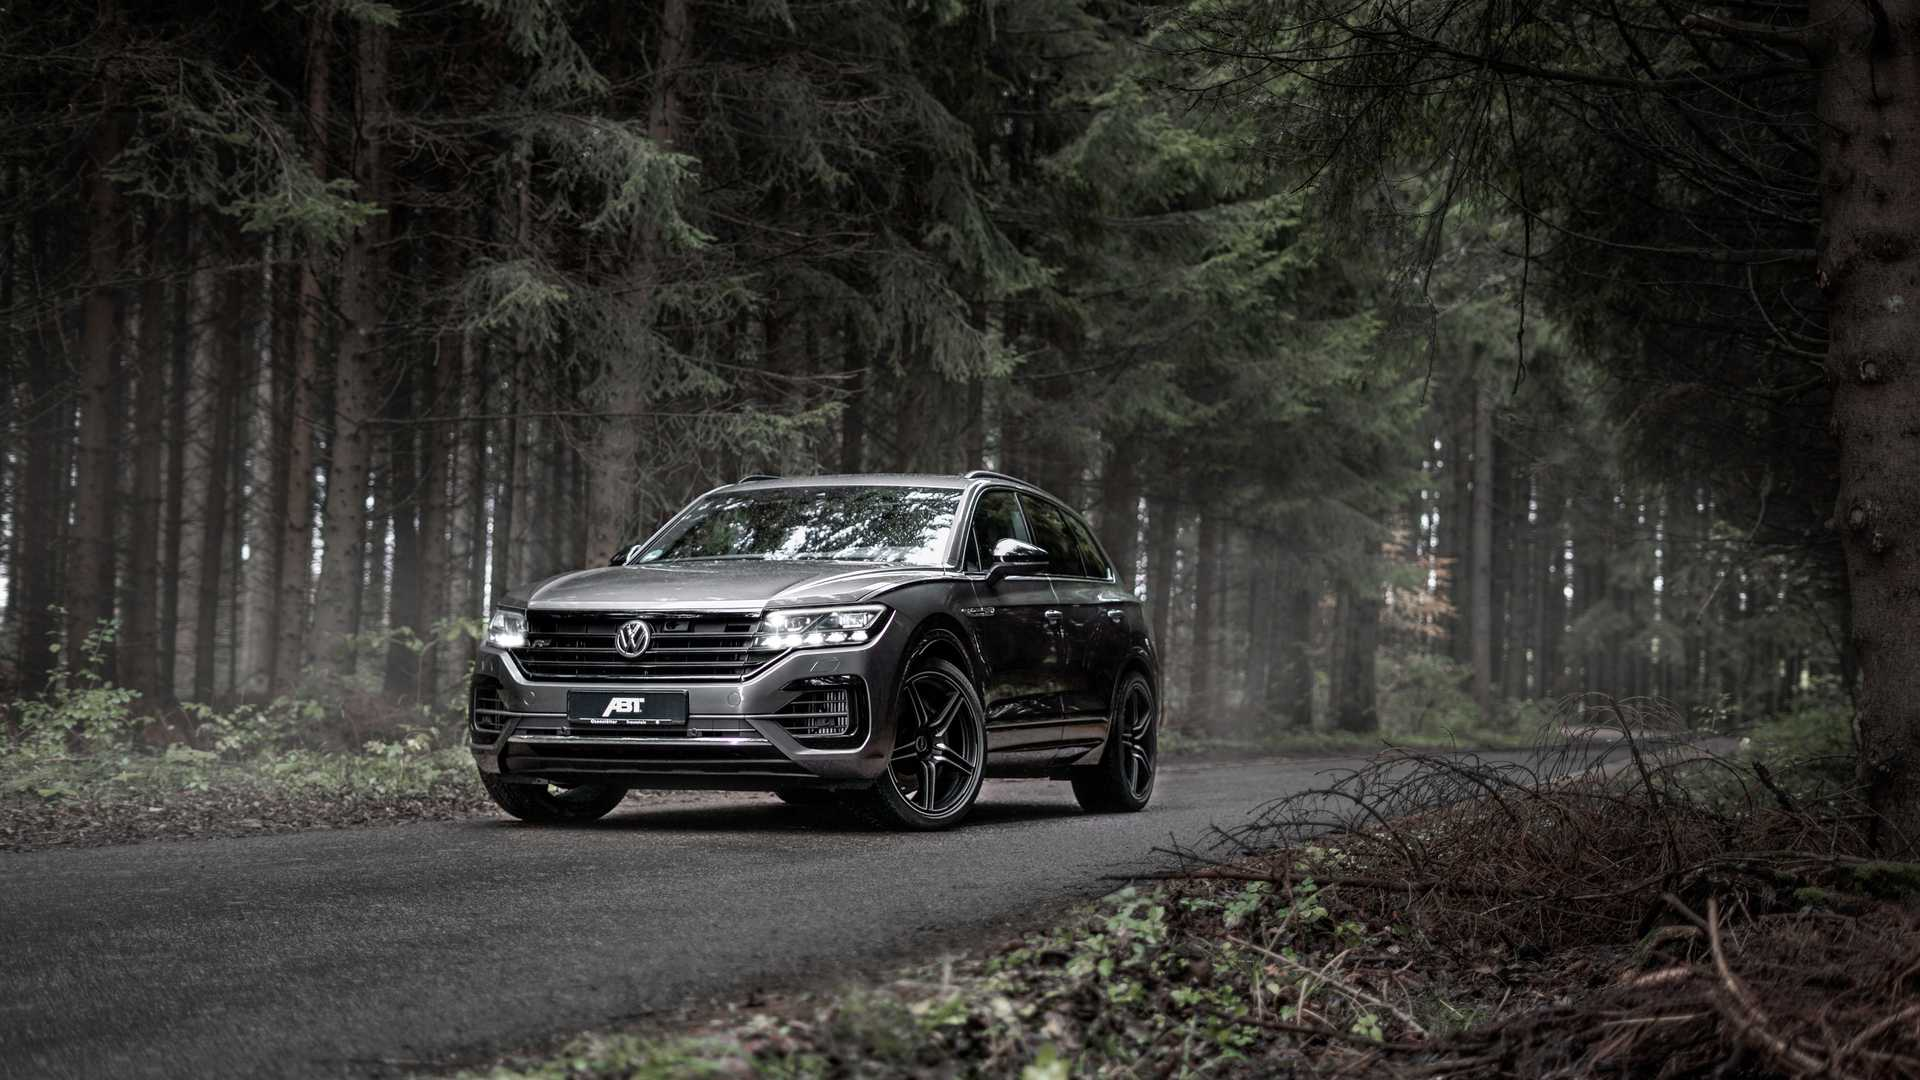 2020 vw touareg v8 tdi from abt has an astronomical torque output autoevolution 2020 vw touareg v8 tdi from abt has an